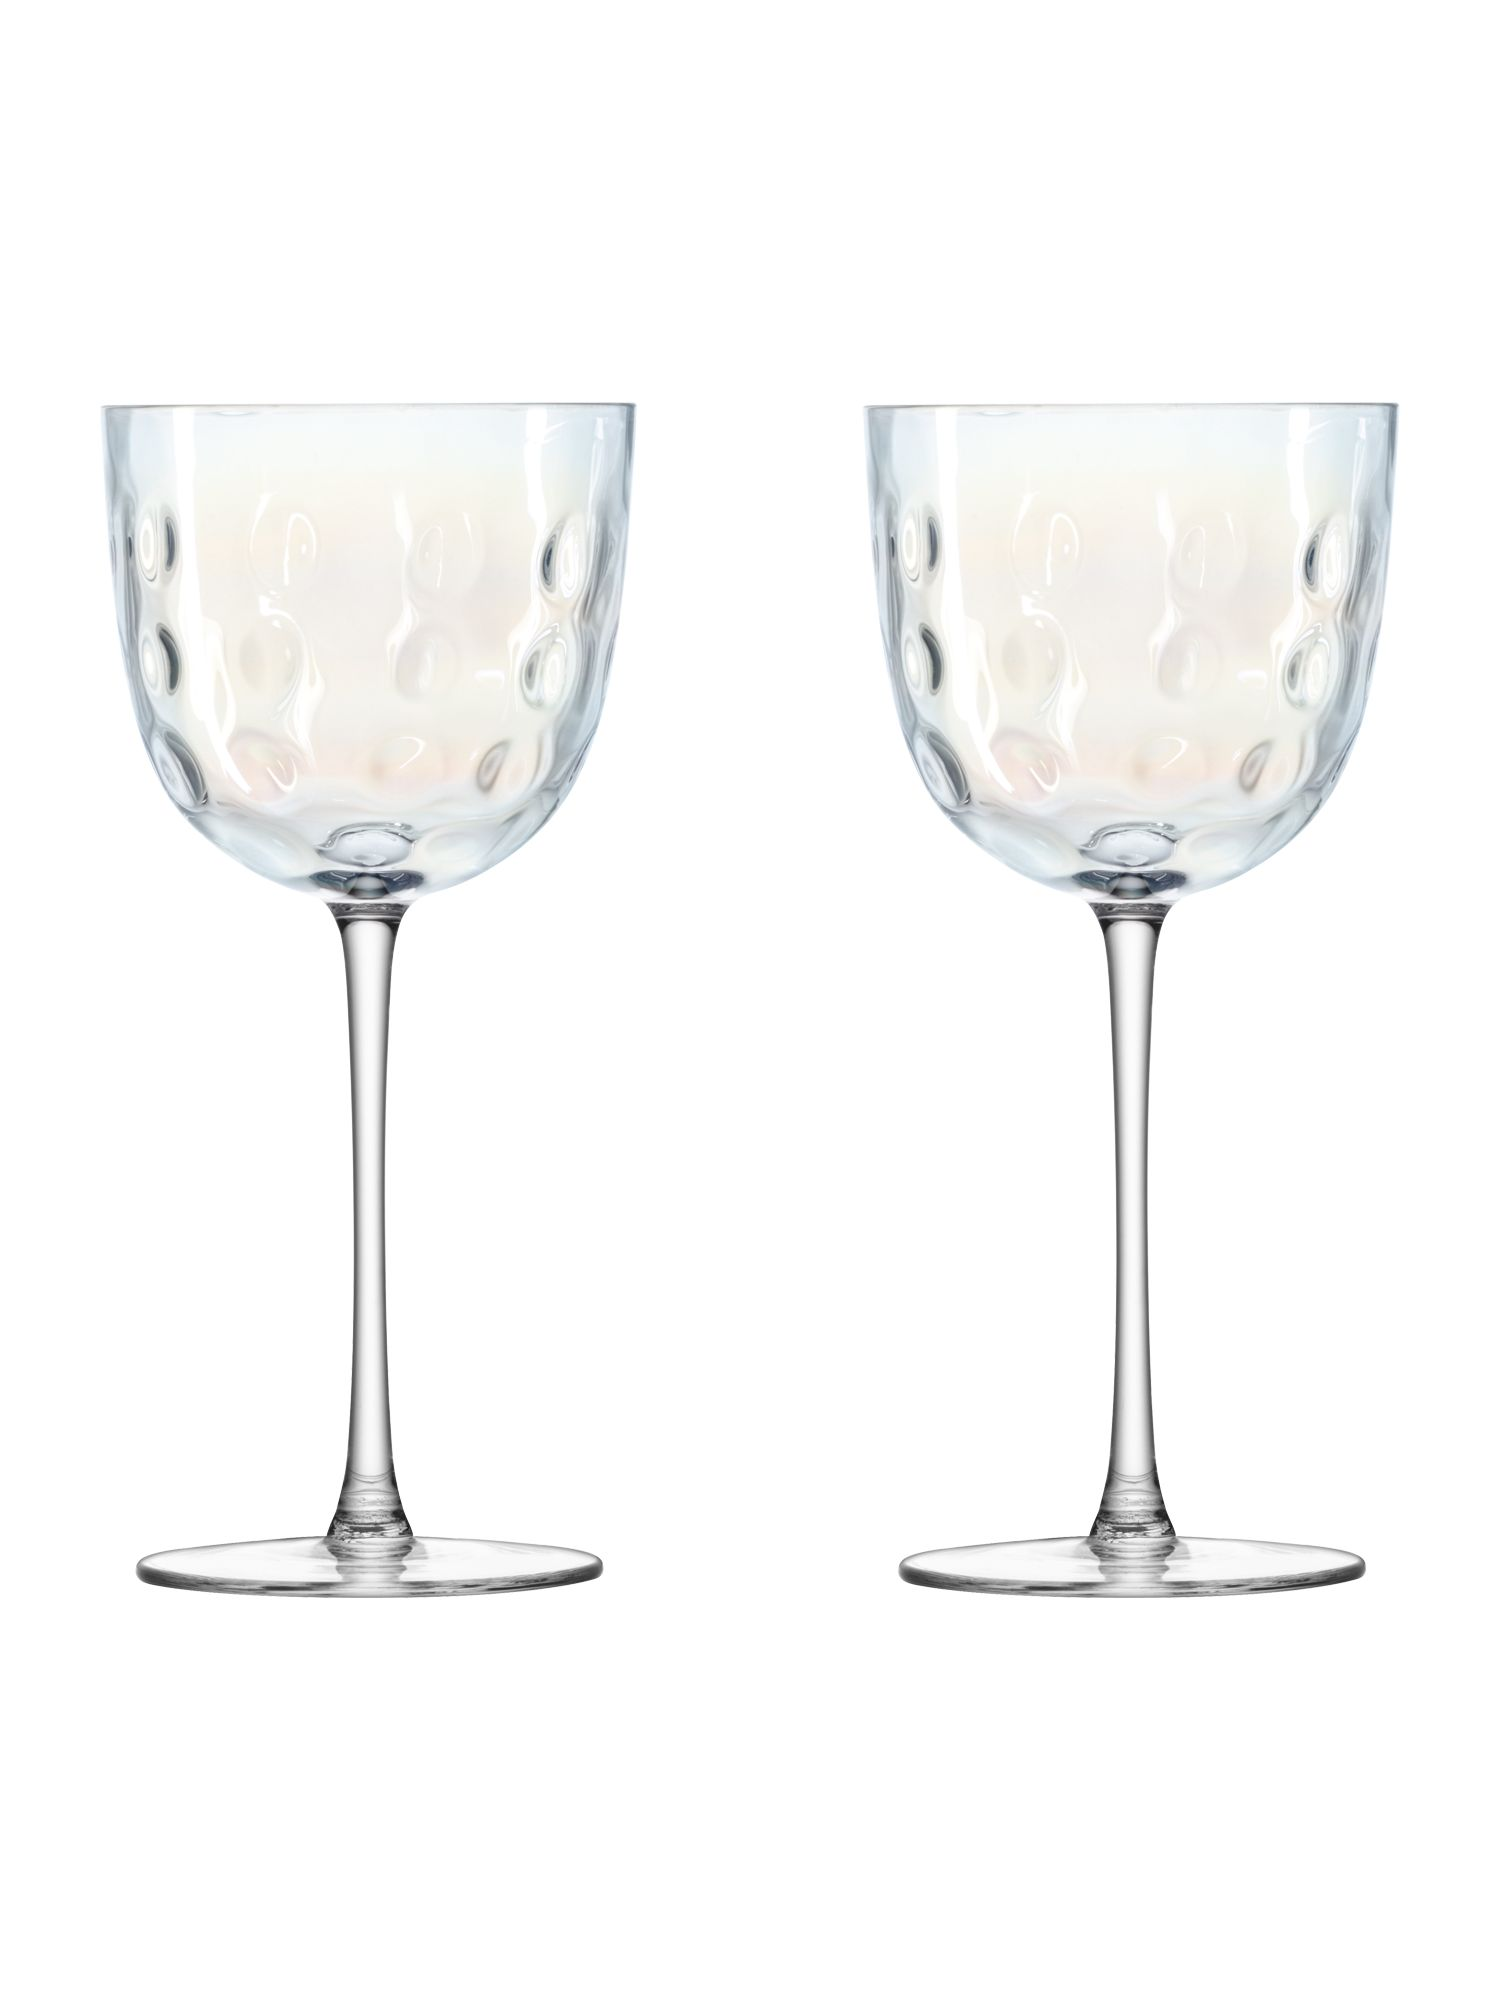 Amelie wine glasses set of 2